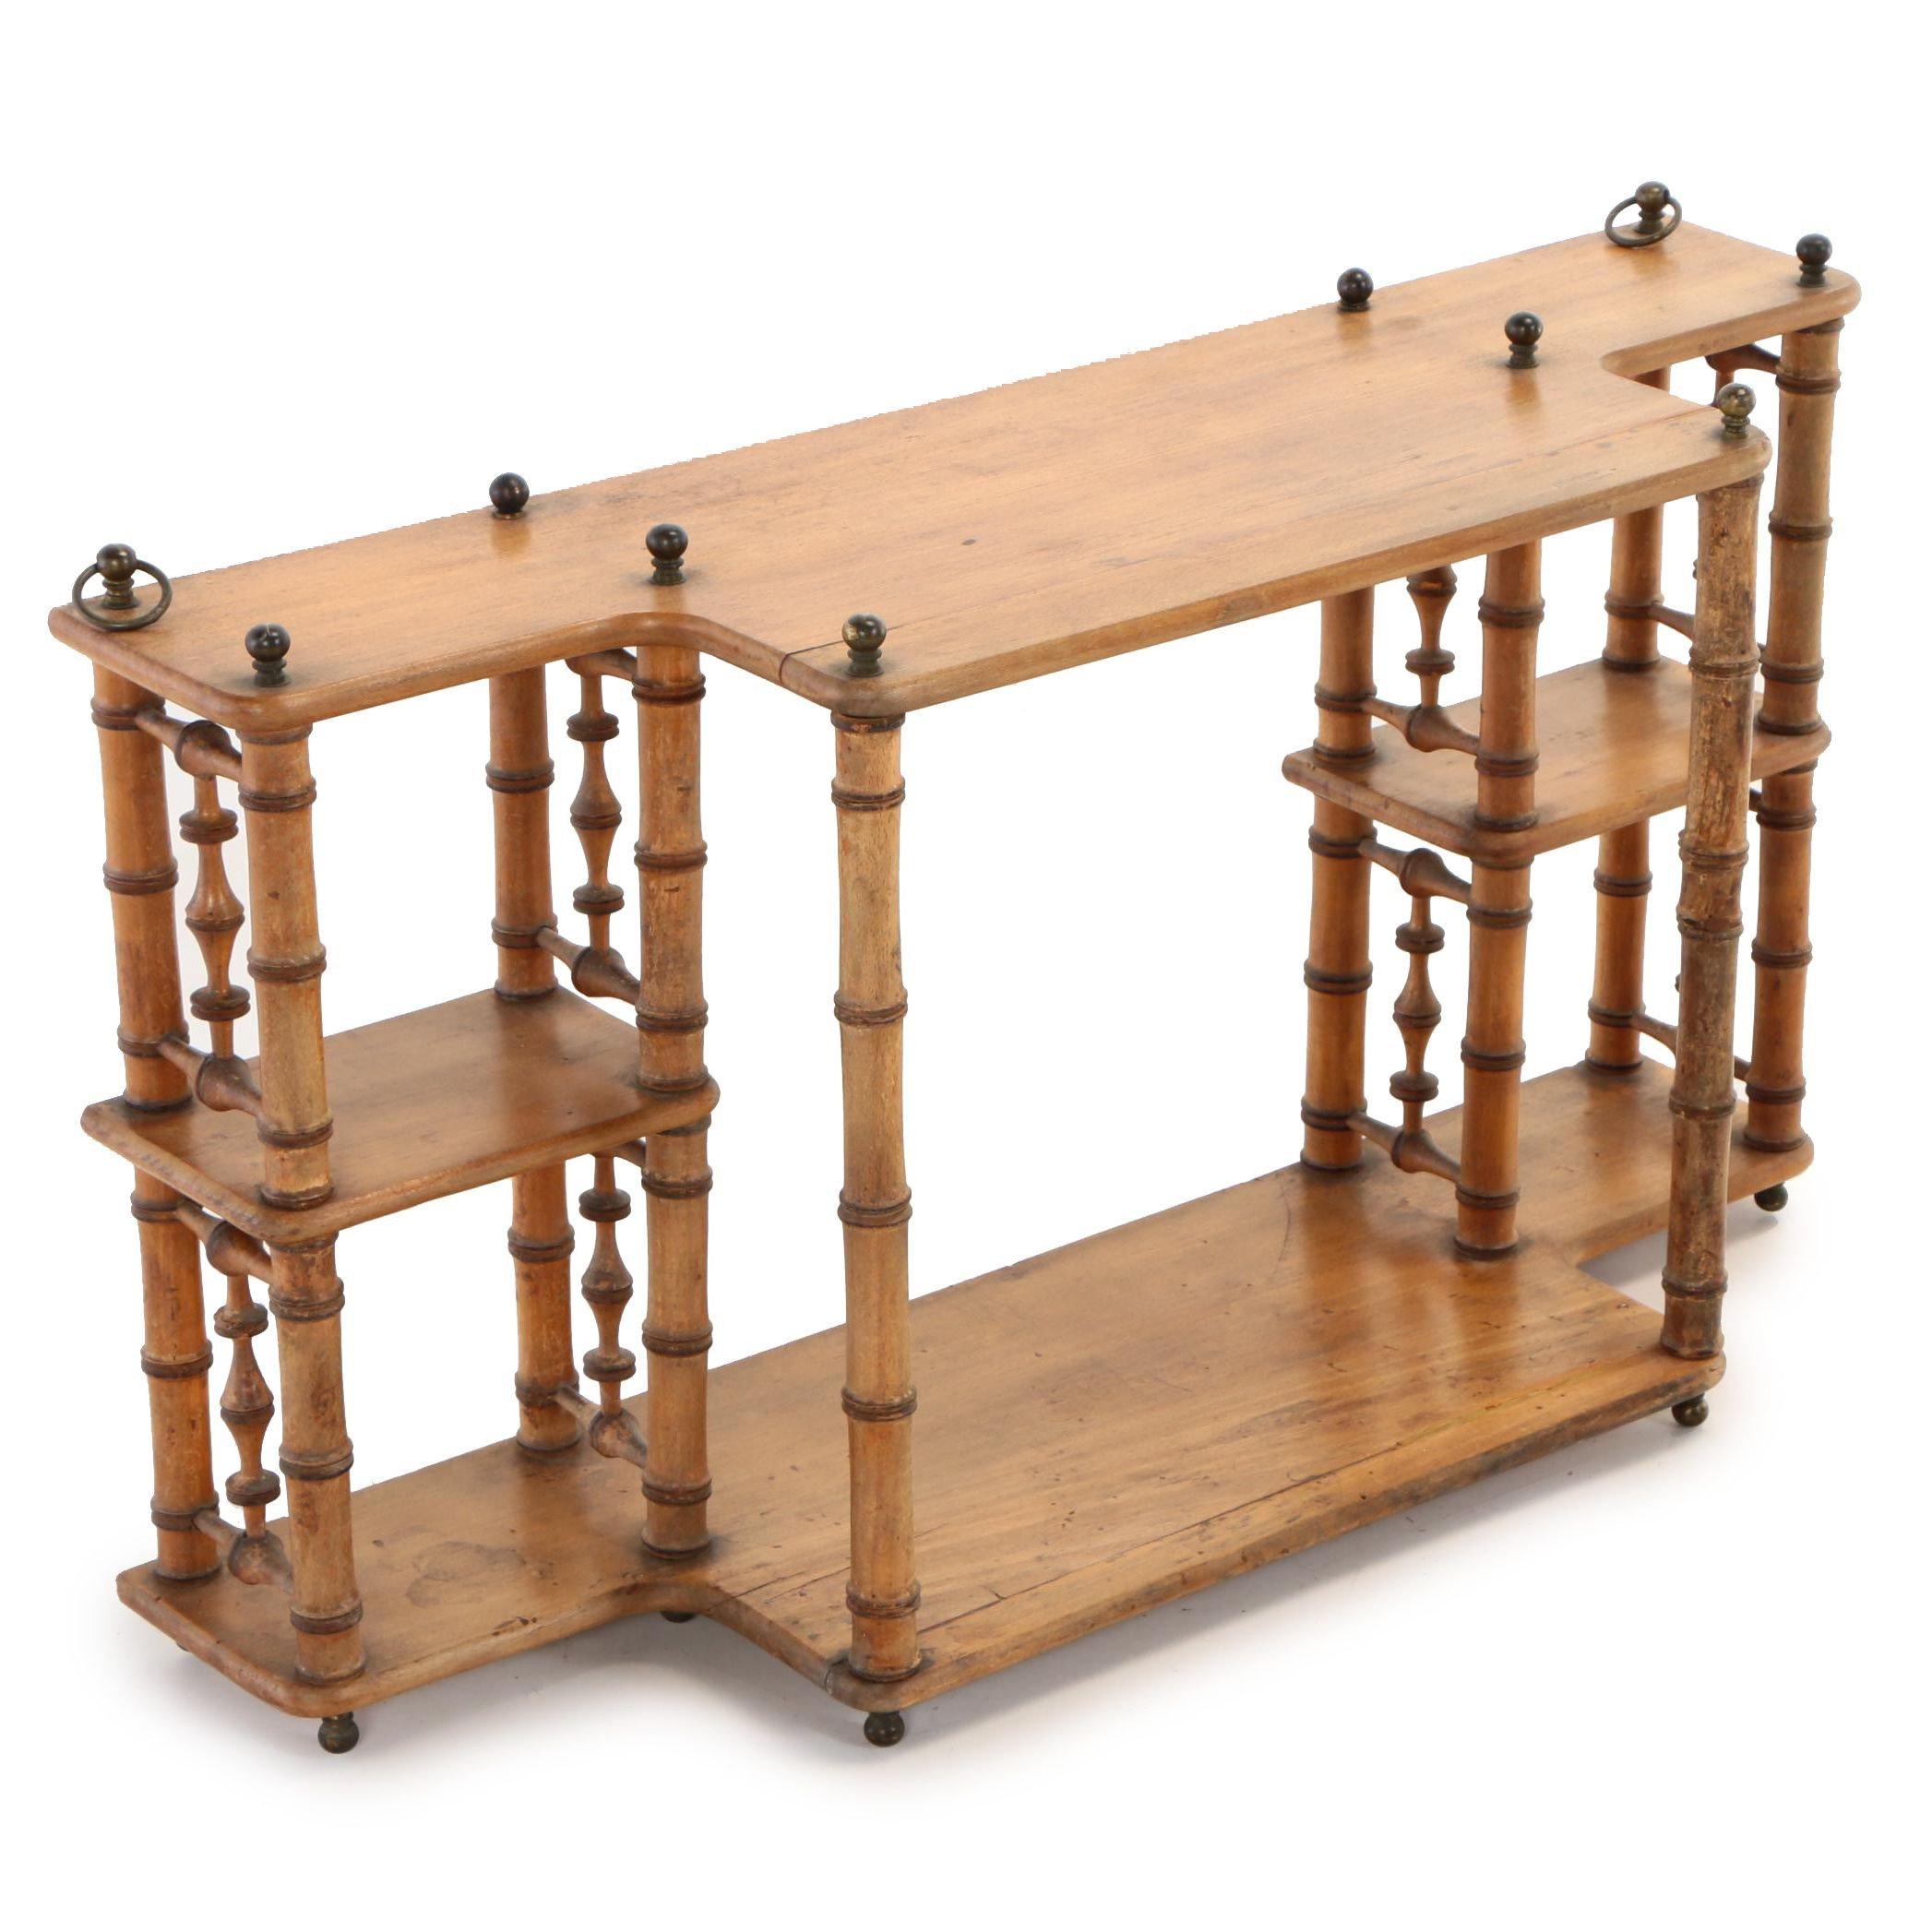 Aesthetic Movement Brass-Mounted & Faux-Bamboo Hanging Shelf, Late 19th Century